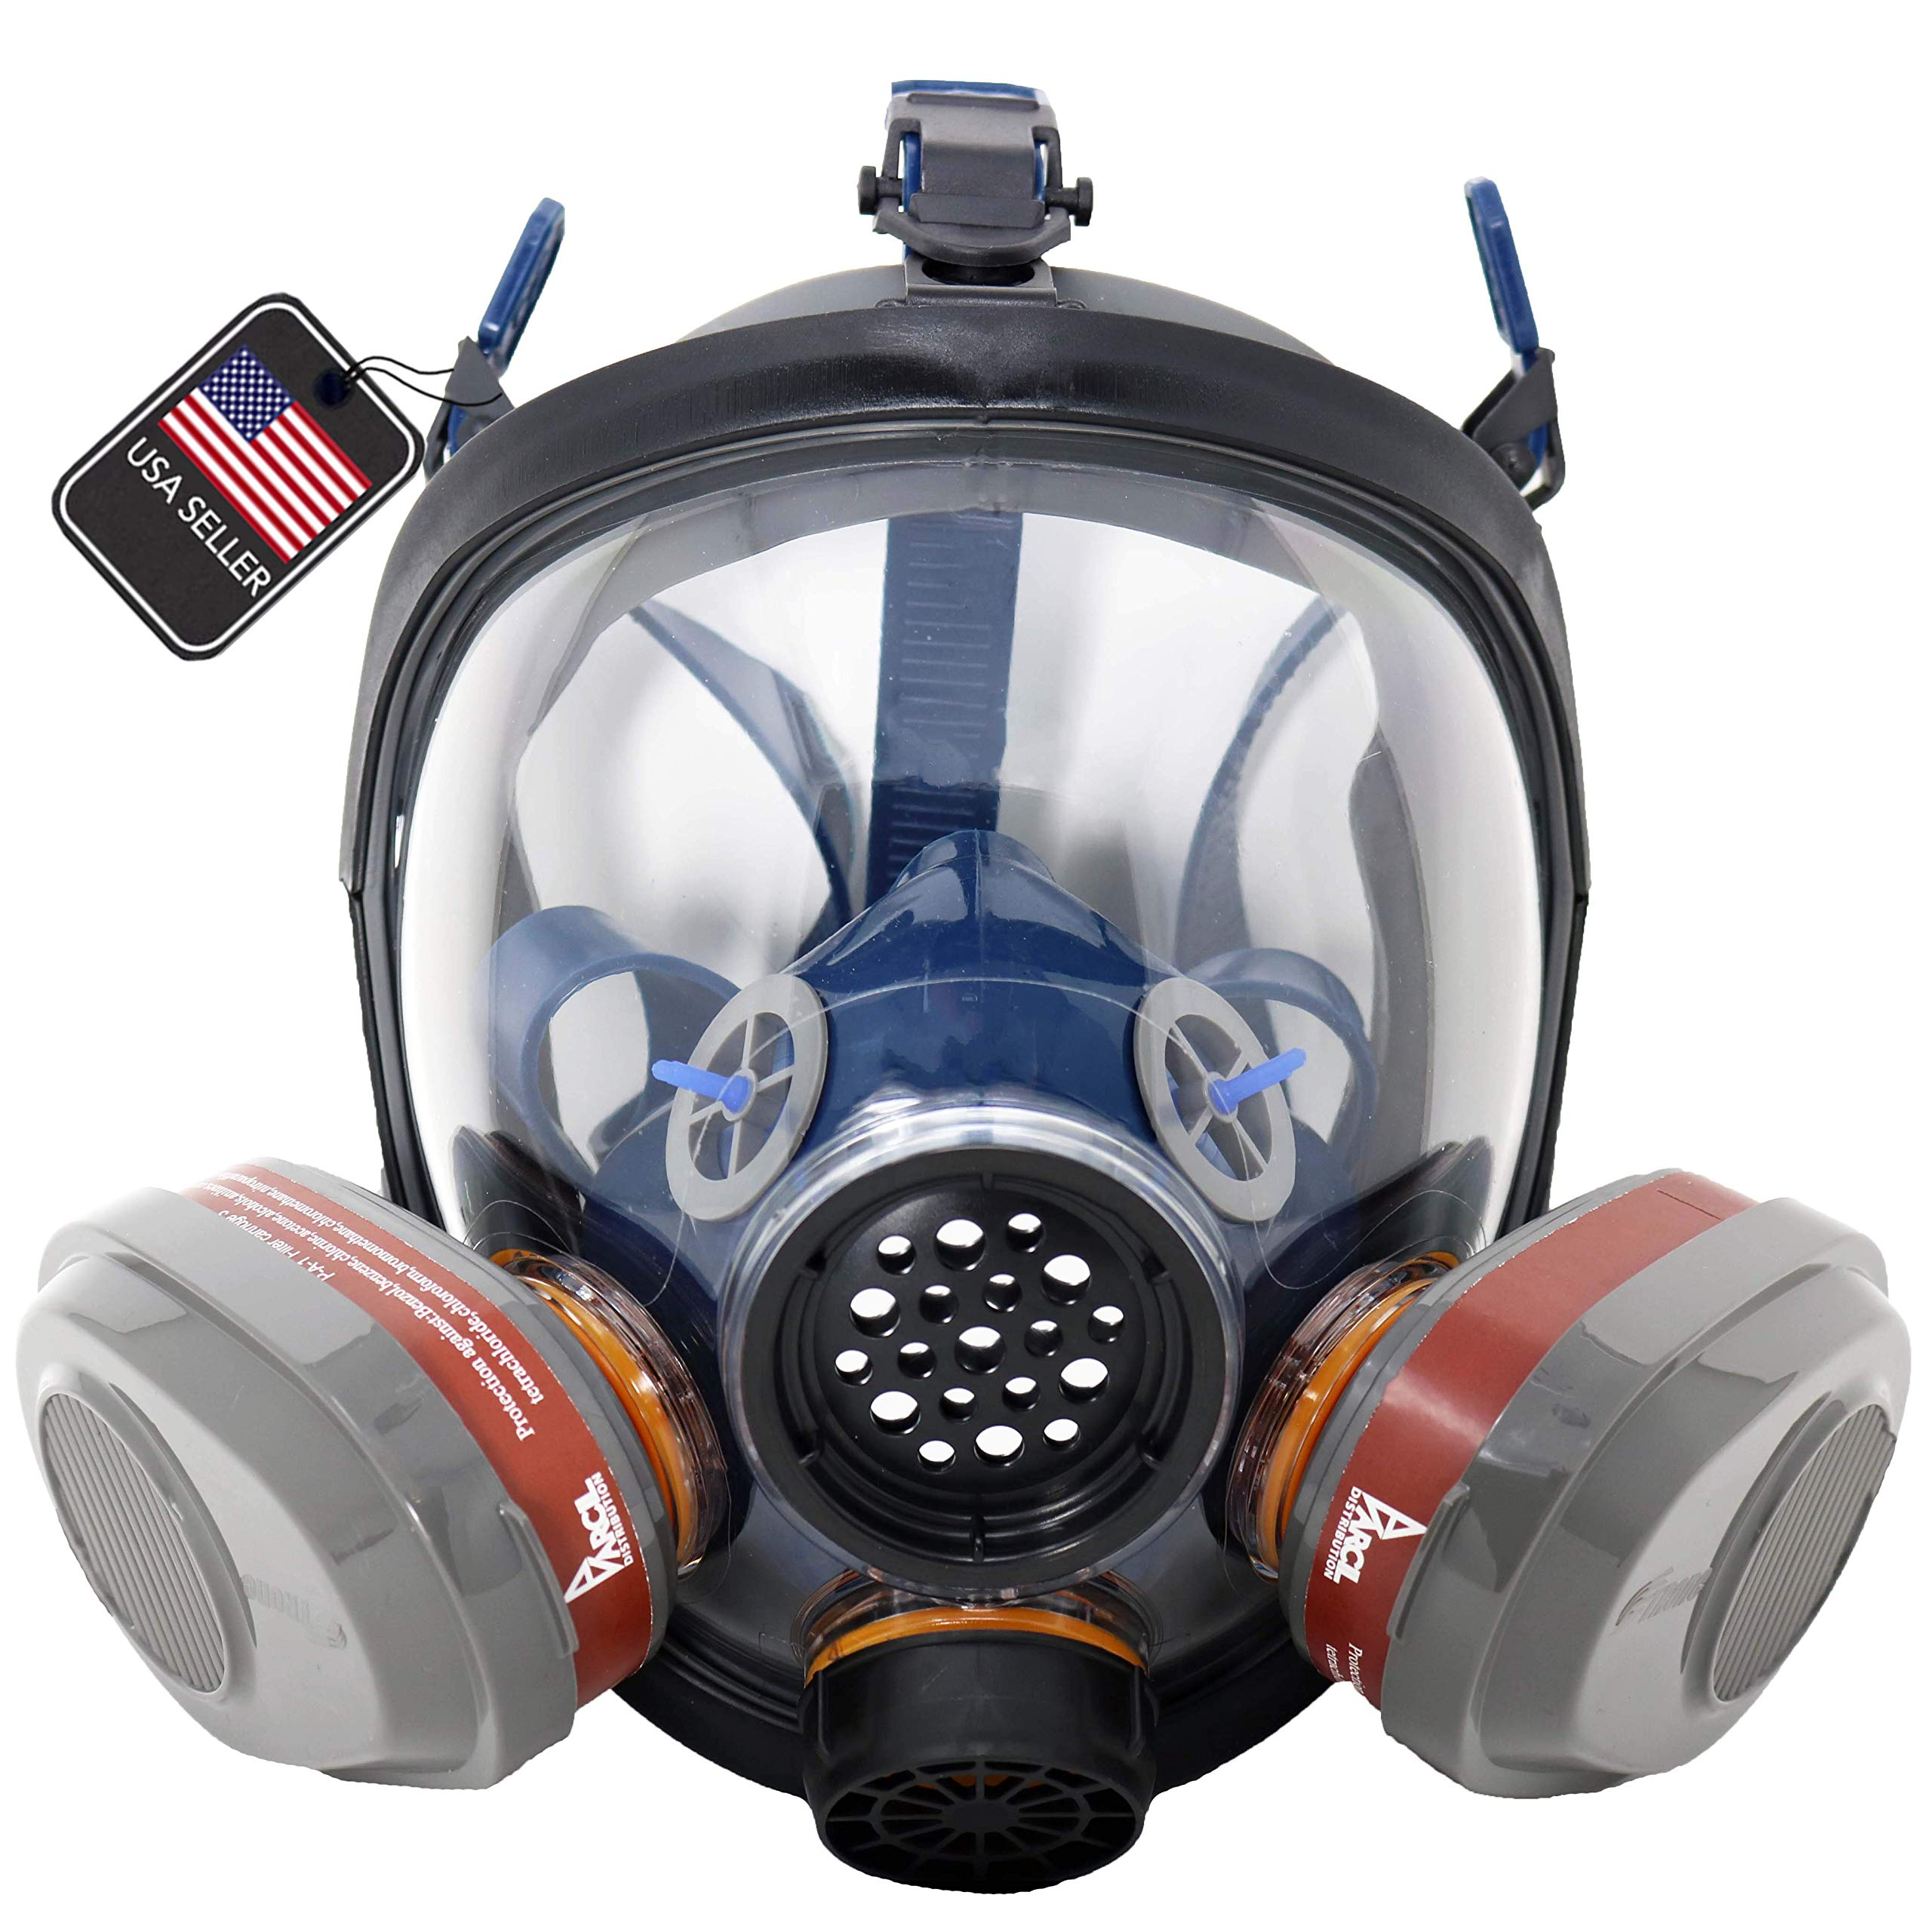 PD-101 Full Face N95 Respirator - ASTM Certified - Double N95 Activated Charcoal Air filter - Industrial Quality by Parcil Distribution